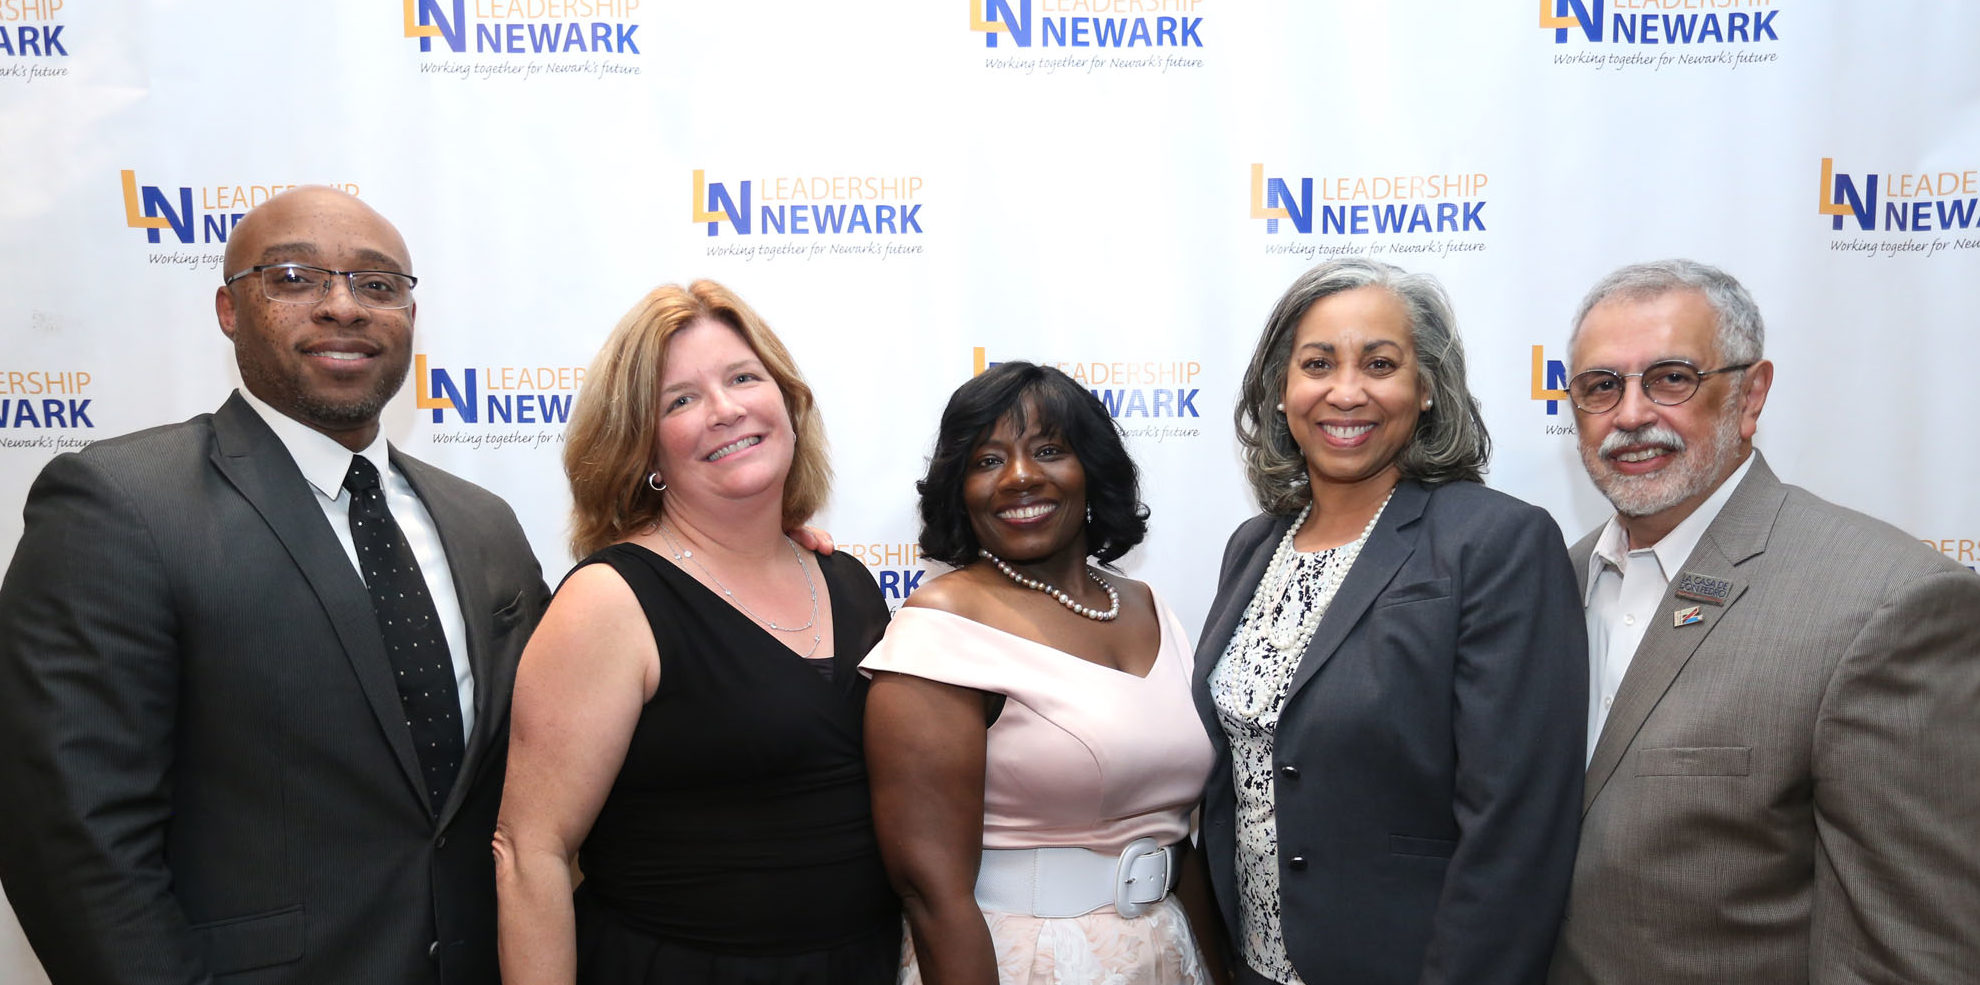 Working together for Newark's future.